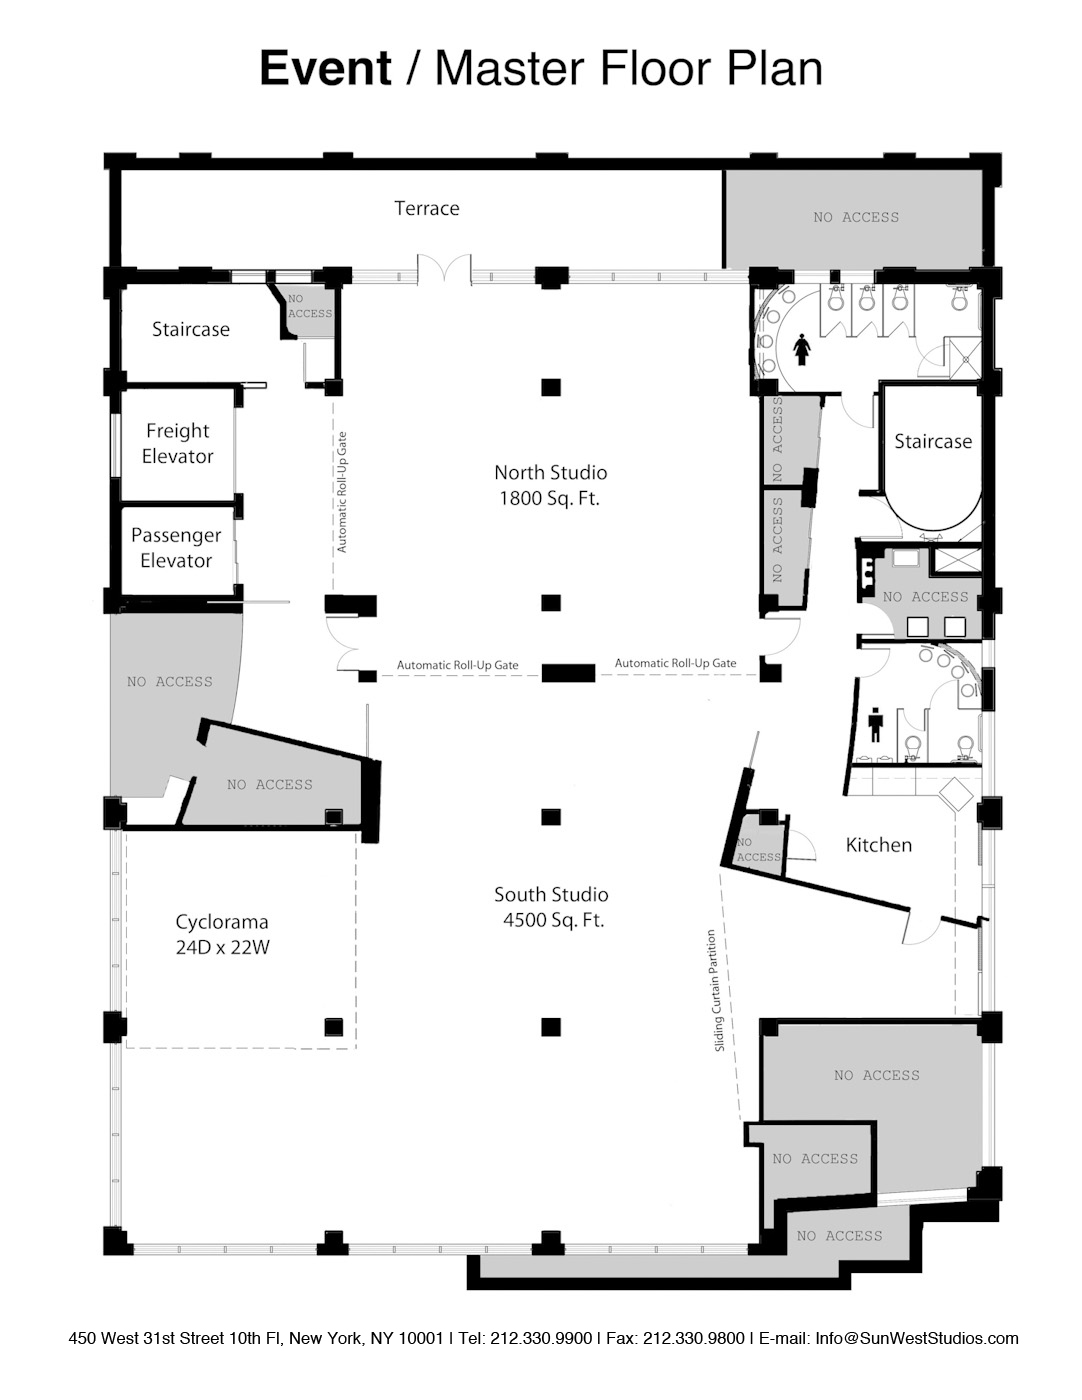 Event-Master-Floor-Plan-1400-w-Title-w-Footer.jpg